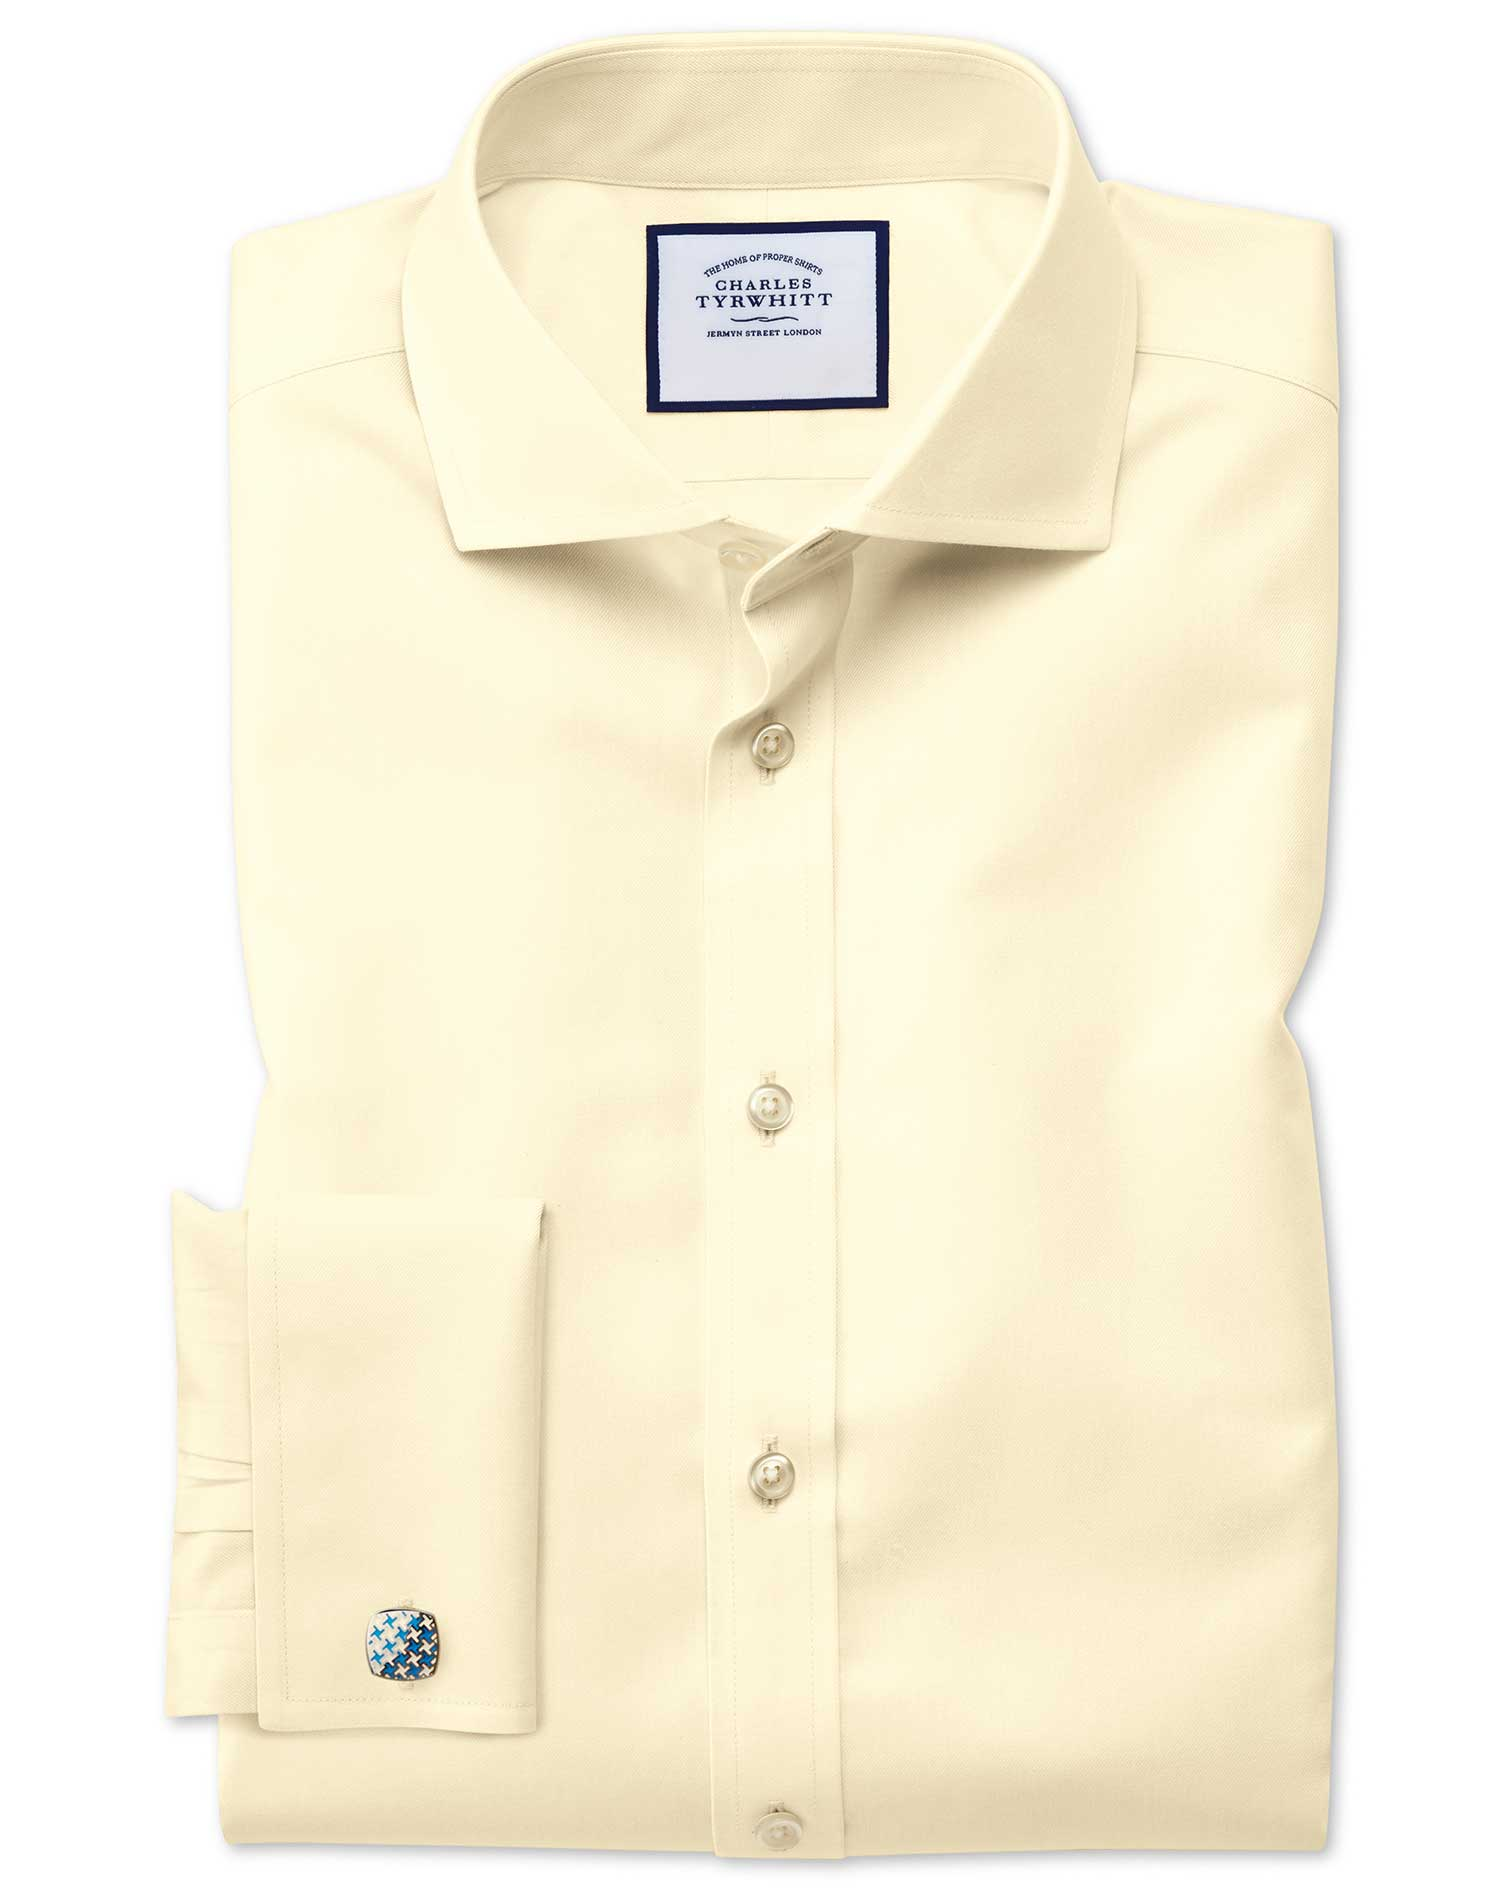 Slim Fit Cutaway Collar Non-Iron Twill Yellow Cotton Formal Shirt Double Cuff Size 16.5/33 by Charle